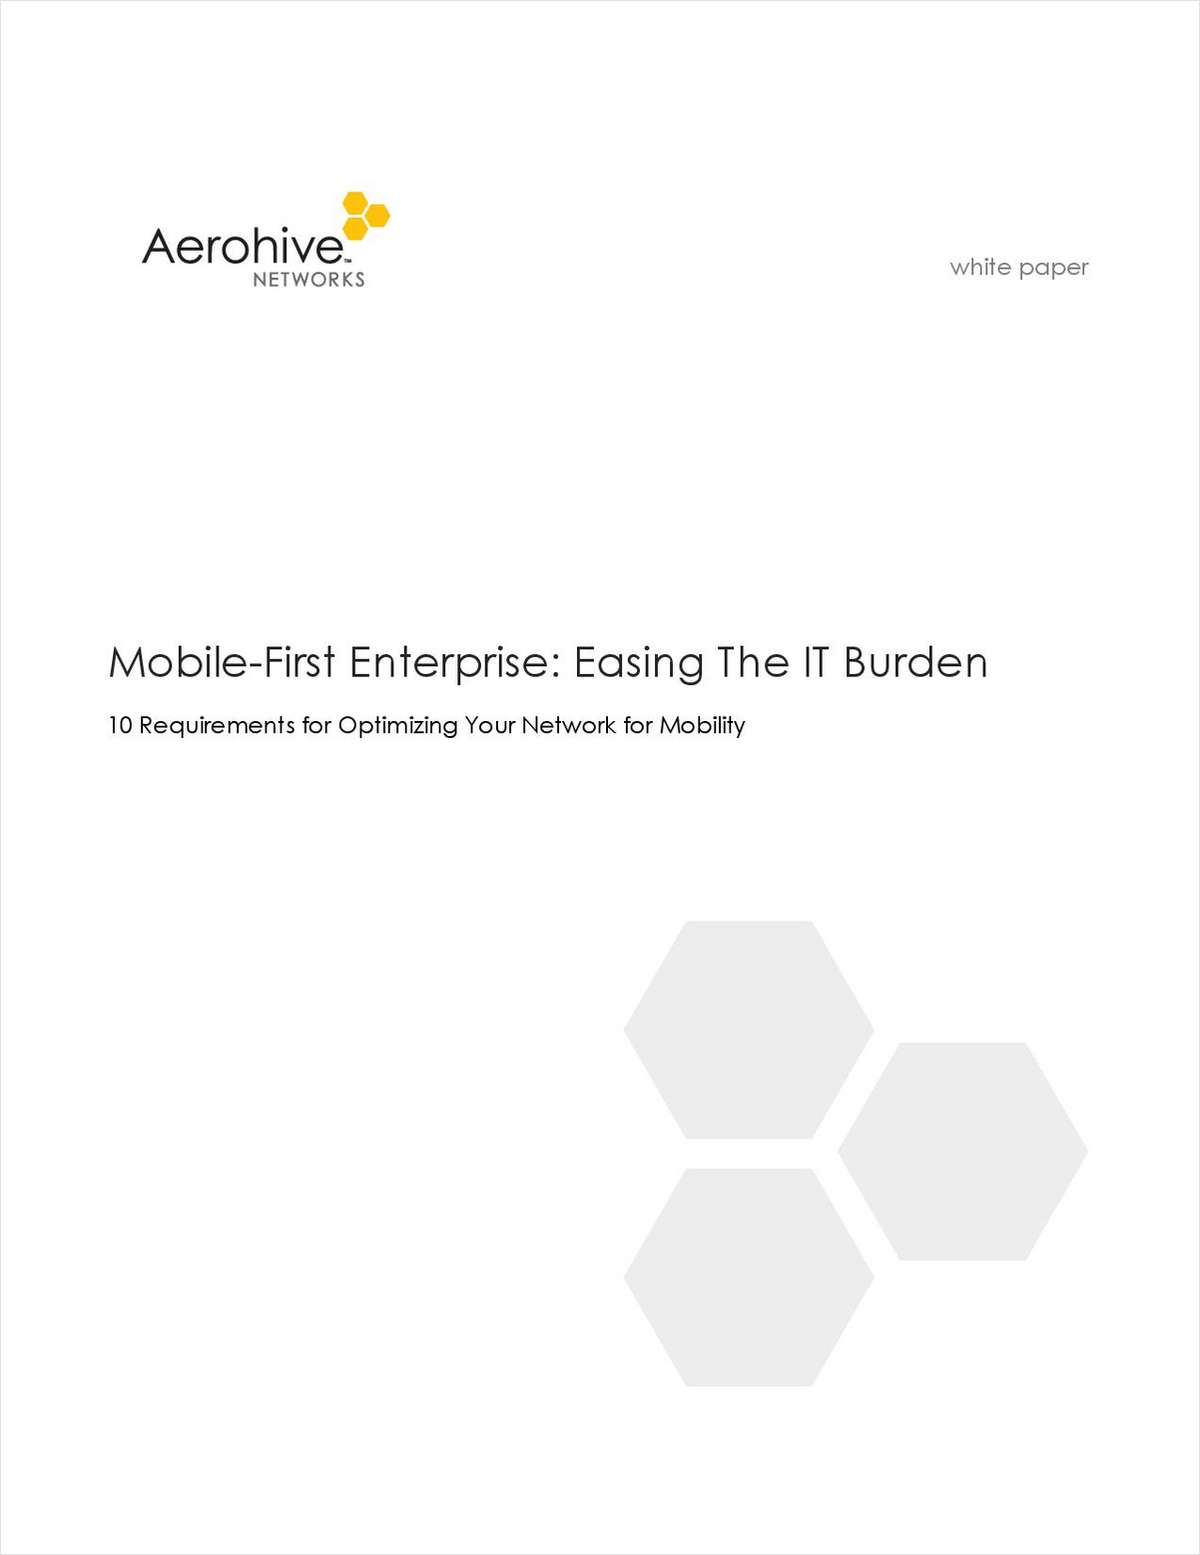 Mobile-First Enterprise: Easing The IT Burden